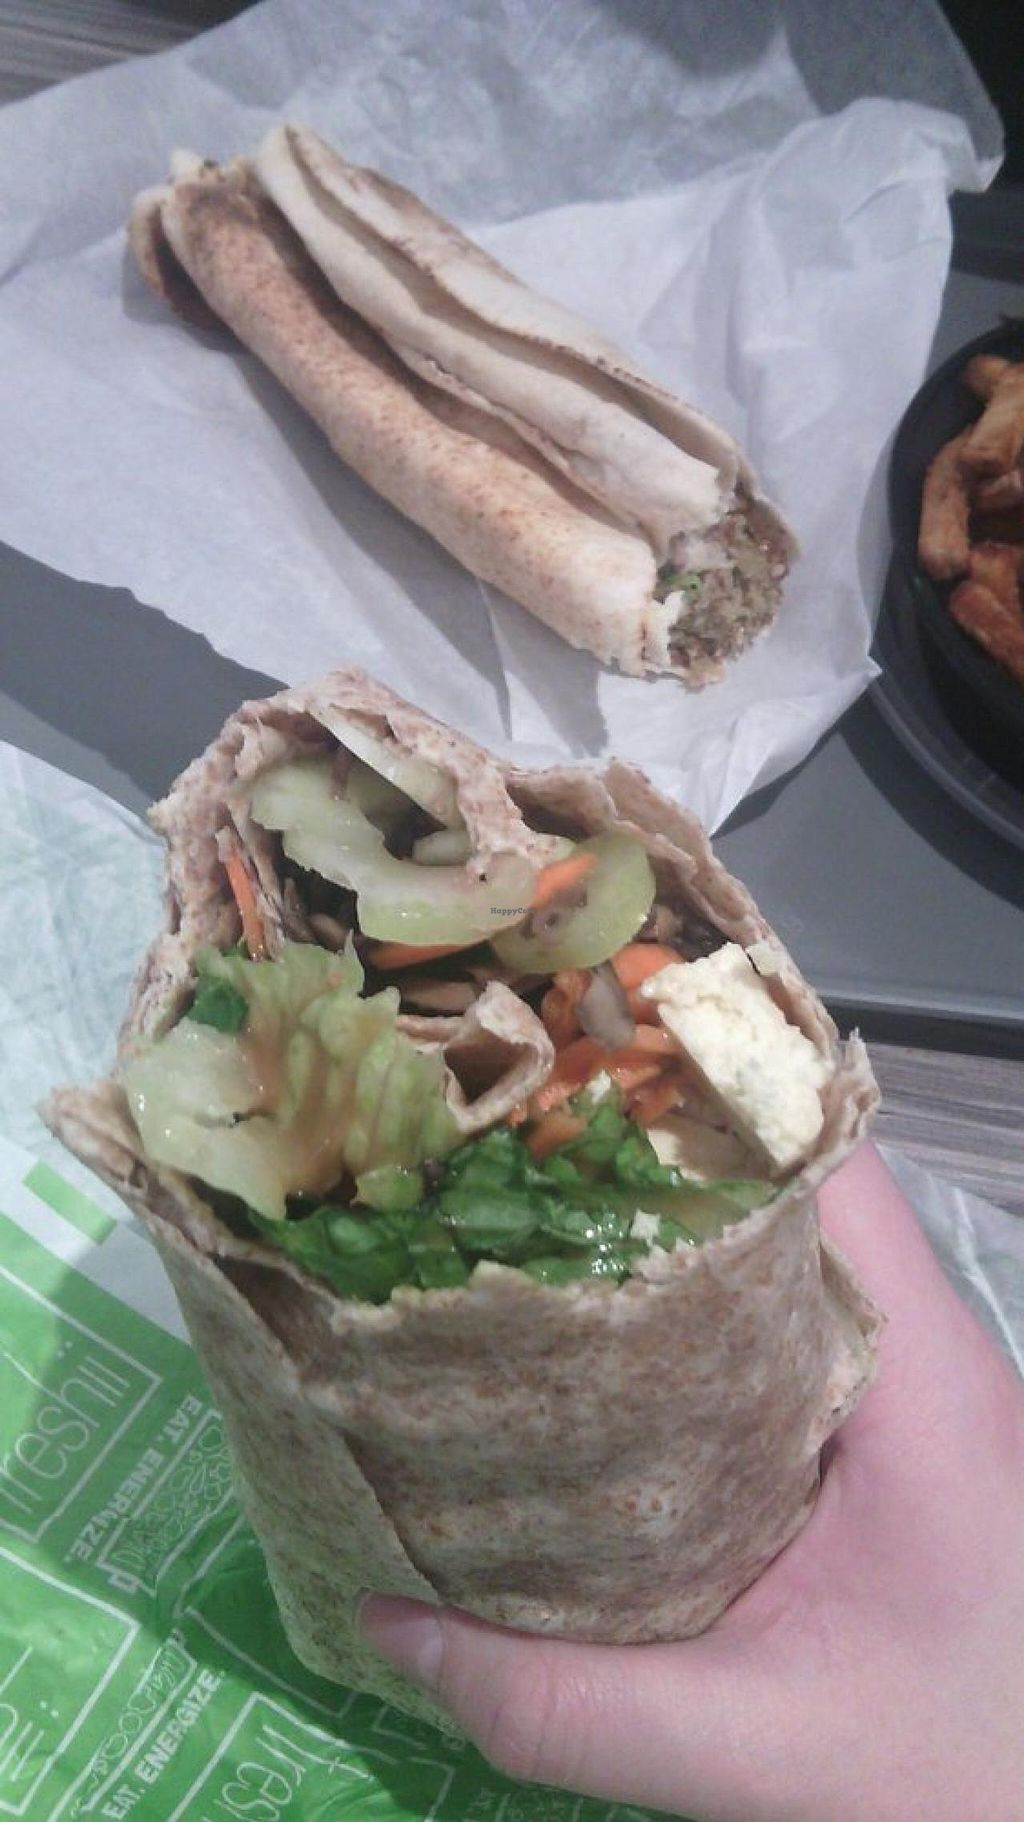 "Photo of freshii  by <a href=""/members/profile/QuothTheRaven"">QuothTheRaven</a> <br/>Custom vegan wrap  <br/> December 6, 2014  - <a href='/contact/abuse/image/52942/87363'>Report</a>"